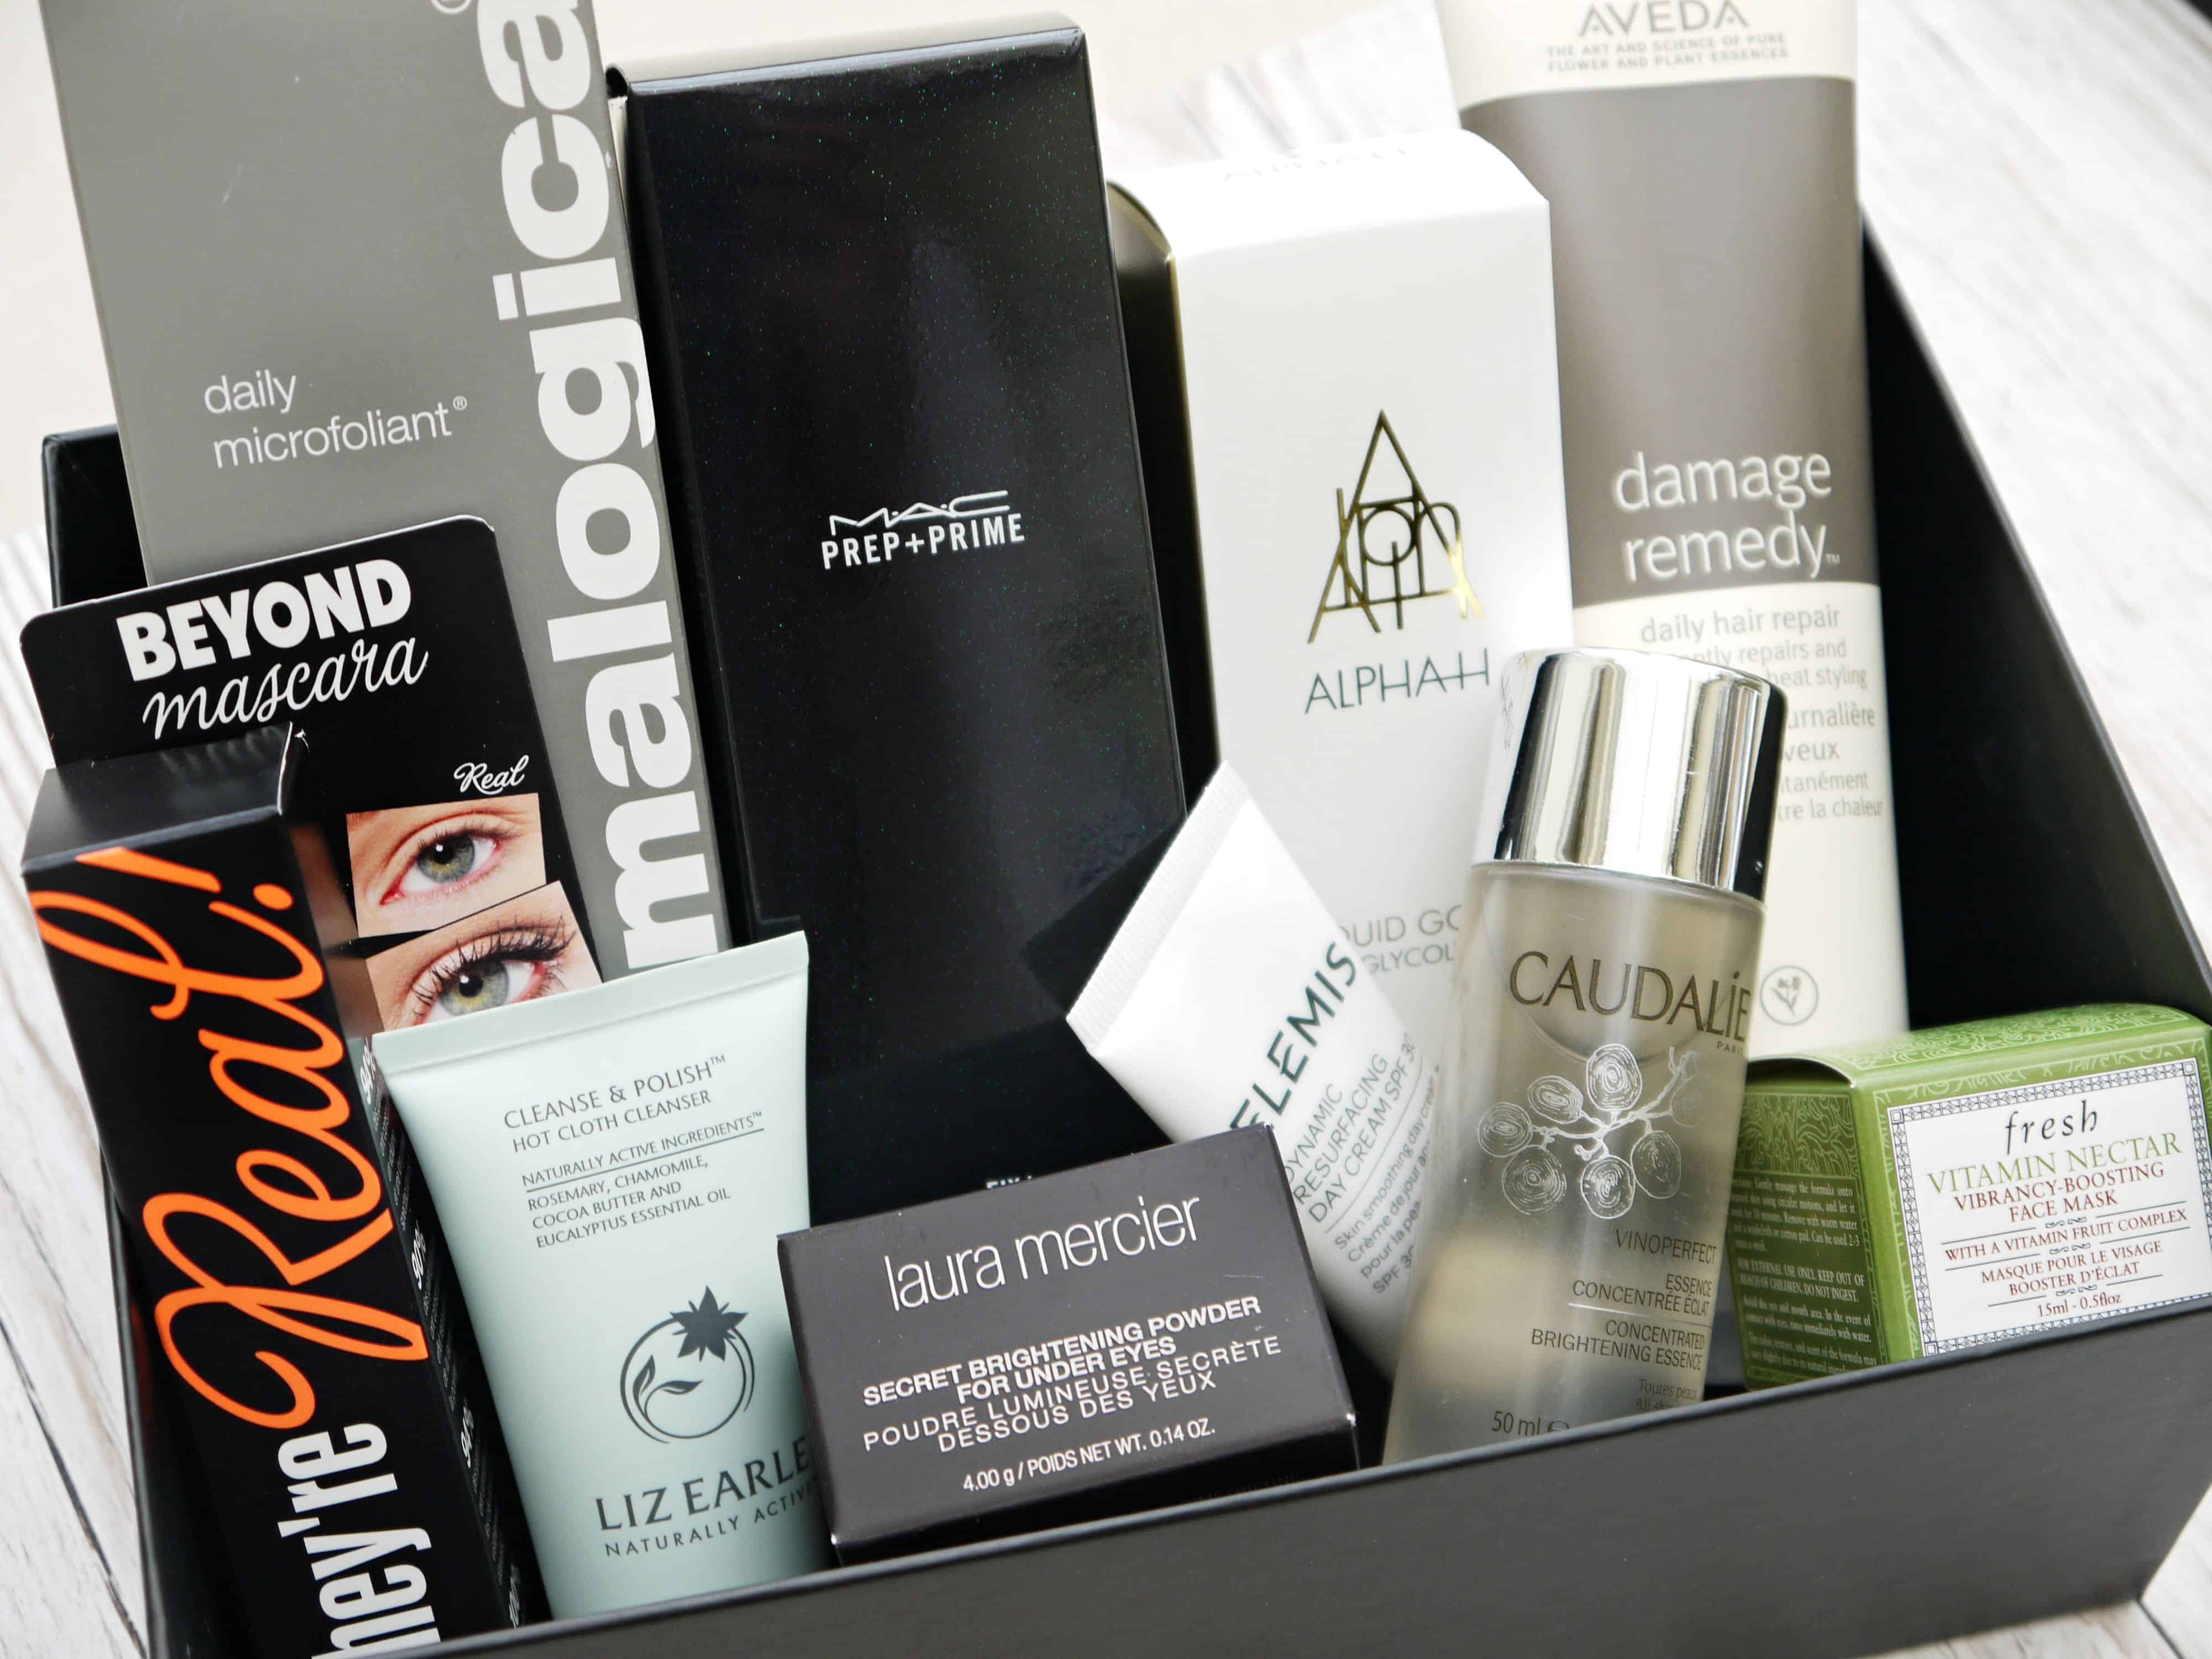 hapers bazaar latest in beauty box review thebeautytype.com beauty blog northampton thrapston peterborough food beauty lifestyle blogger